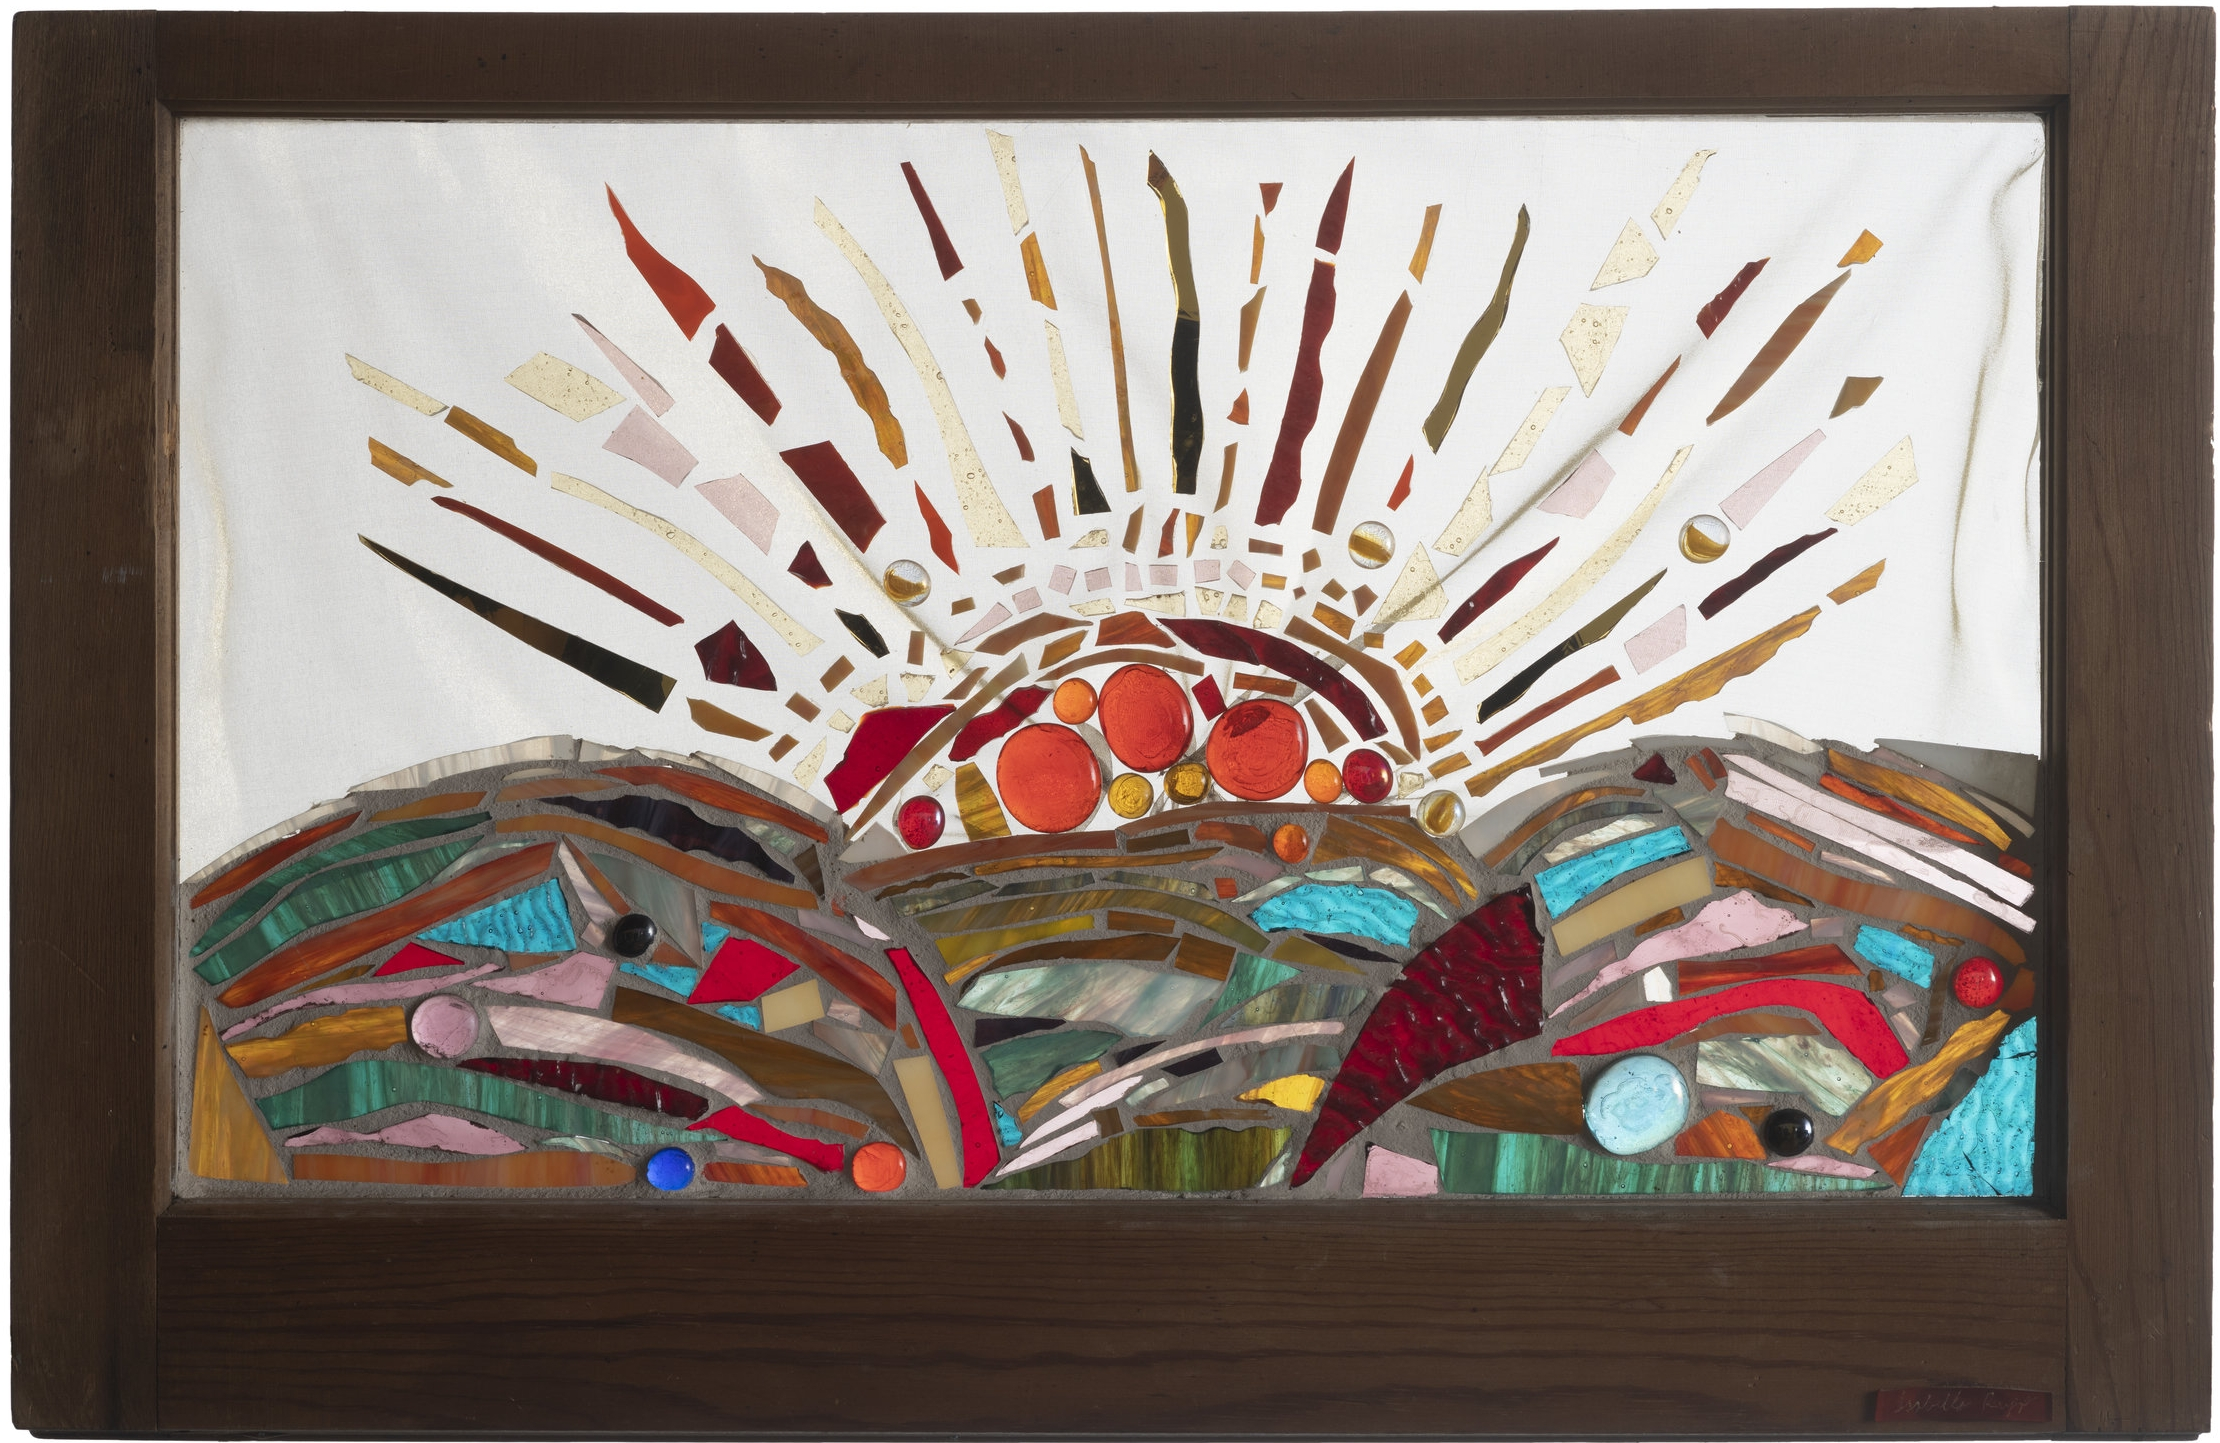 Sunburst, 2001. Glass, fabric, 17½ x 28 in.   50-year old wood frame window from 1805 farmhouse in Catskill Mountains, NY